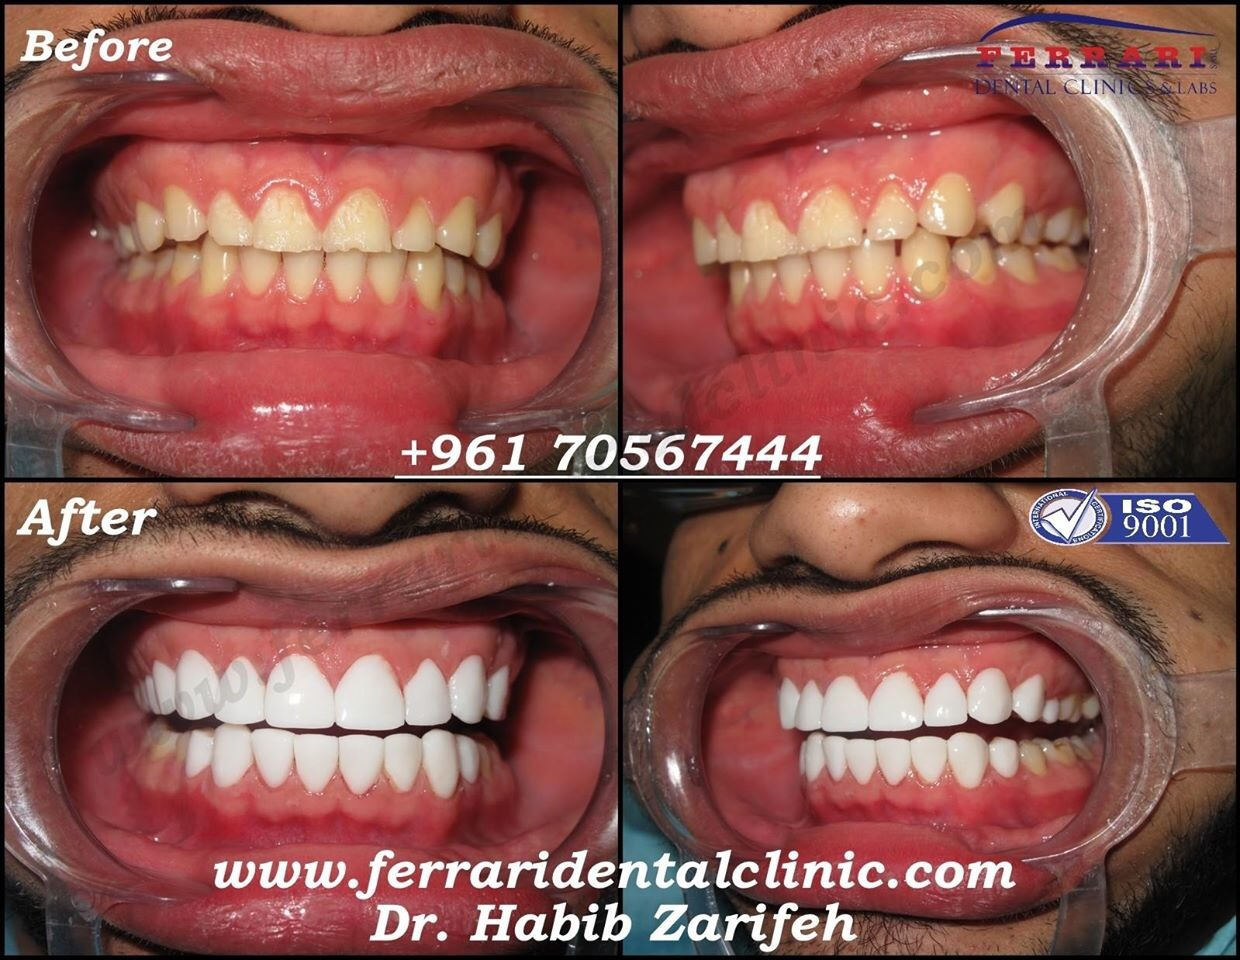 Visit Dental Clinic For Teeth Whitening Or Dental Implants The Perfect Hollywood Smile In Lebanon Dr Zarifeh